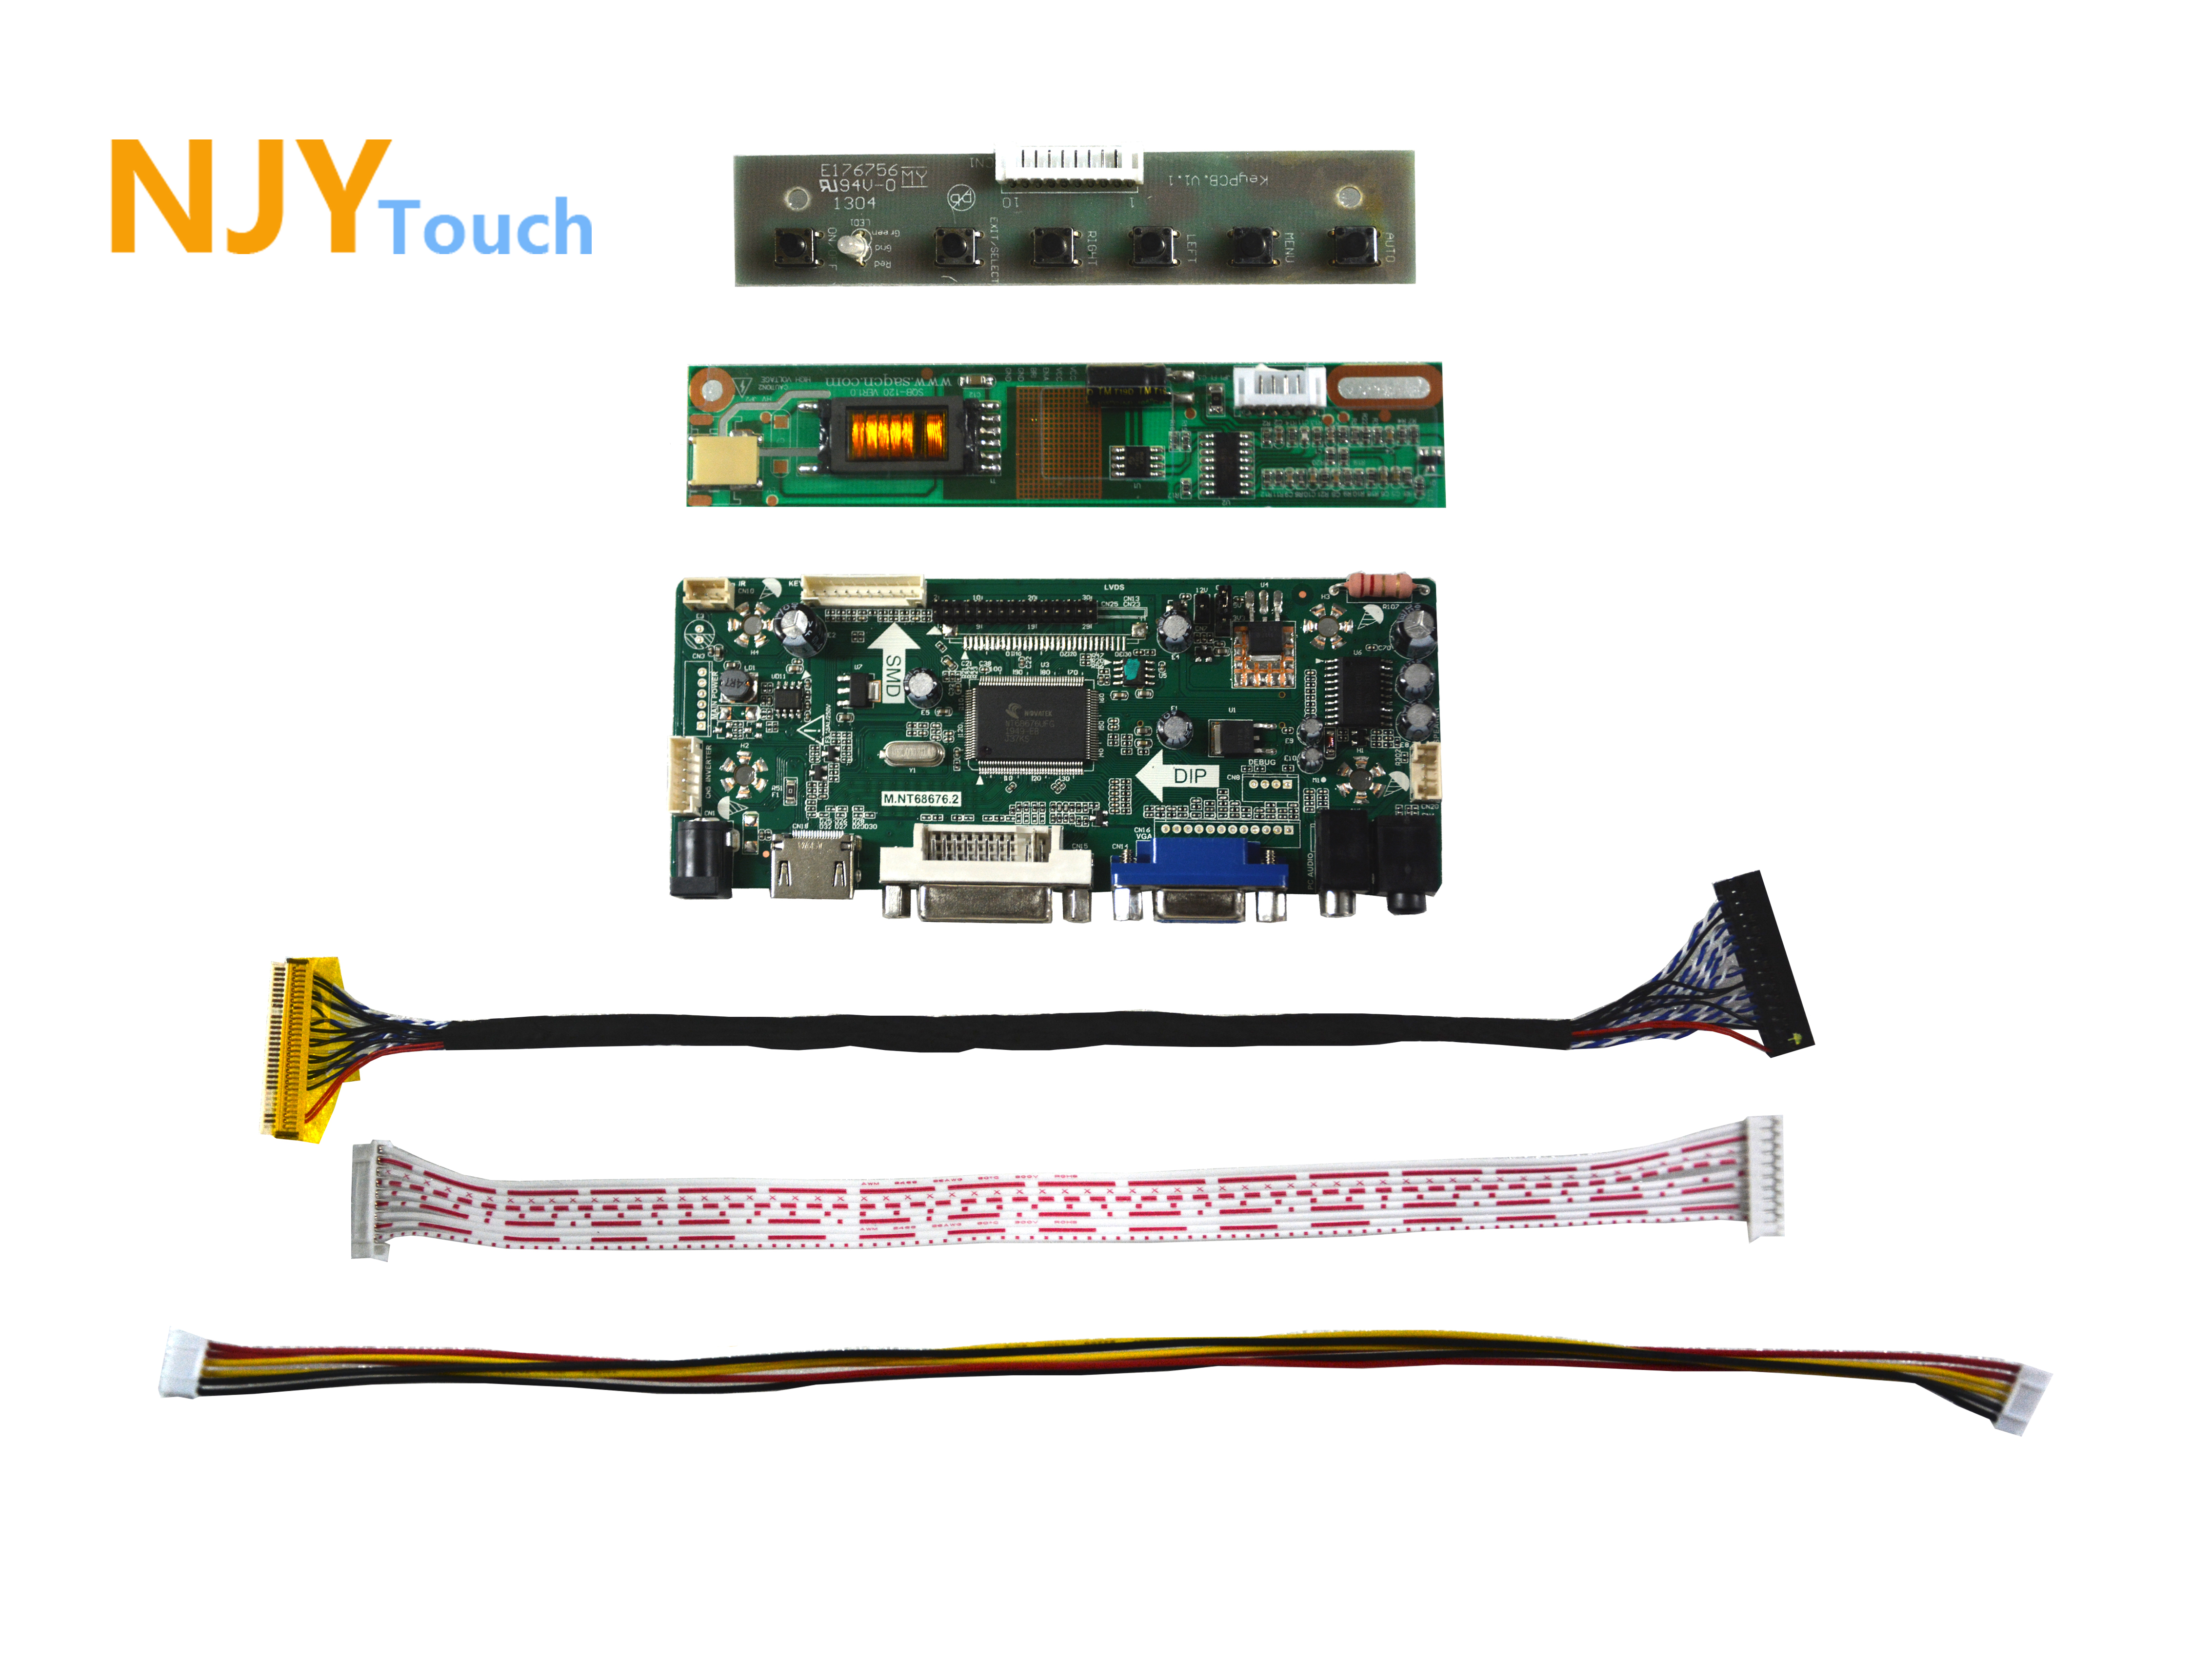 NJYTouch M.NT68676.2A HDMI VGA DVI Controller Board For 17inch B170PW01 V0 B170PW03 1440x900 LCD Screen